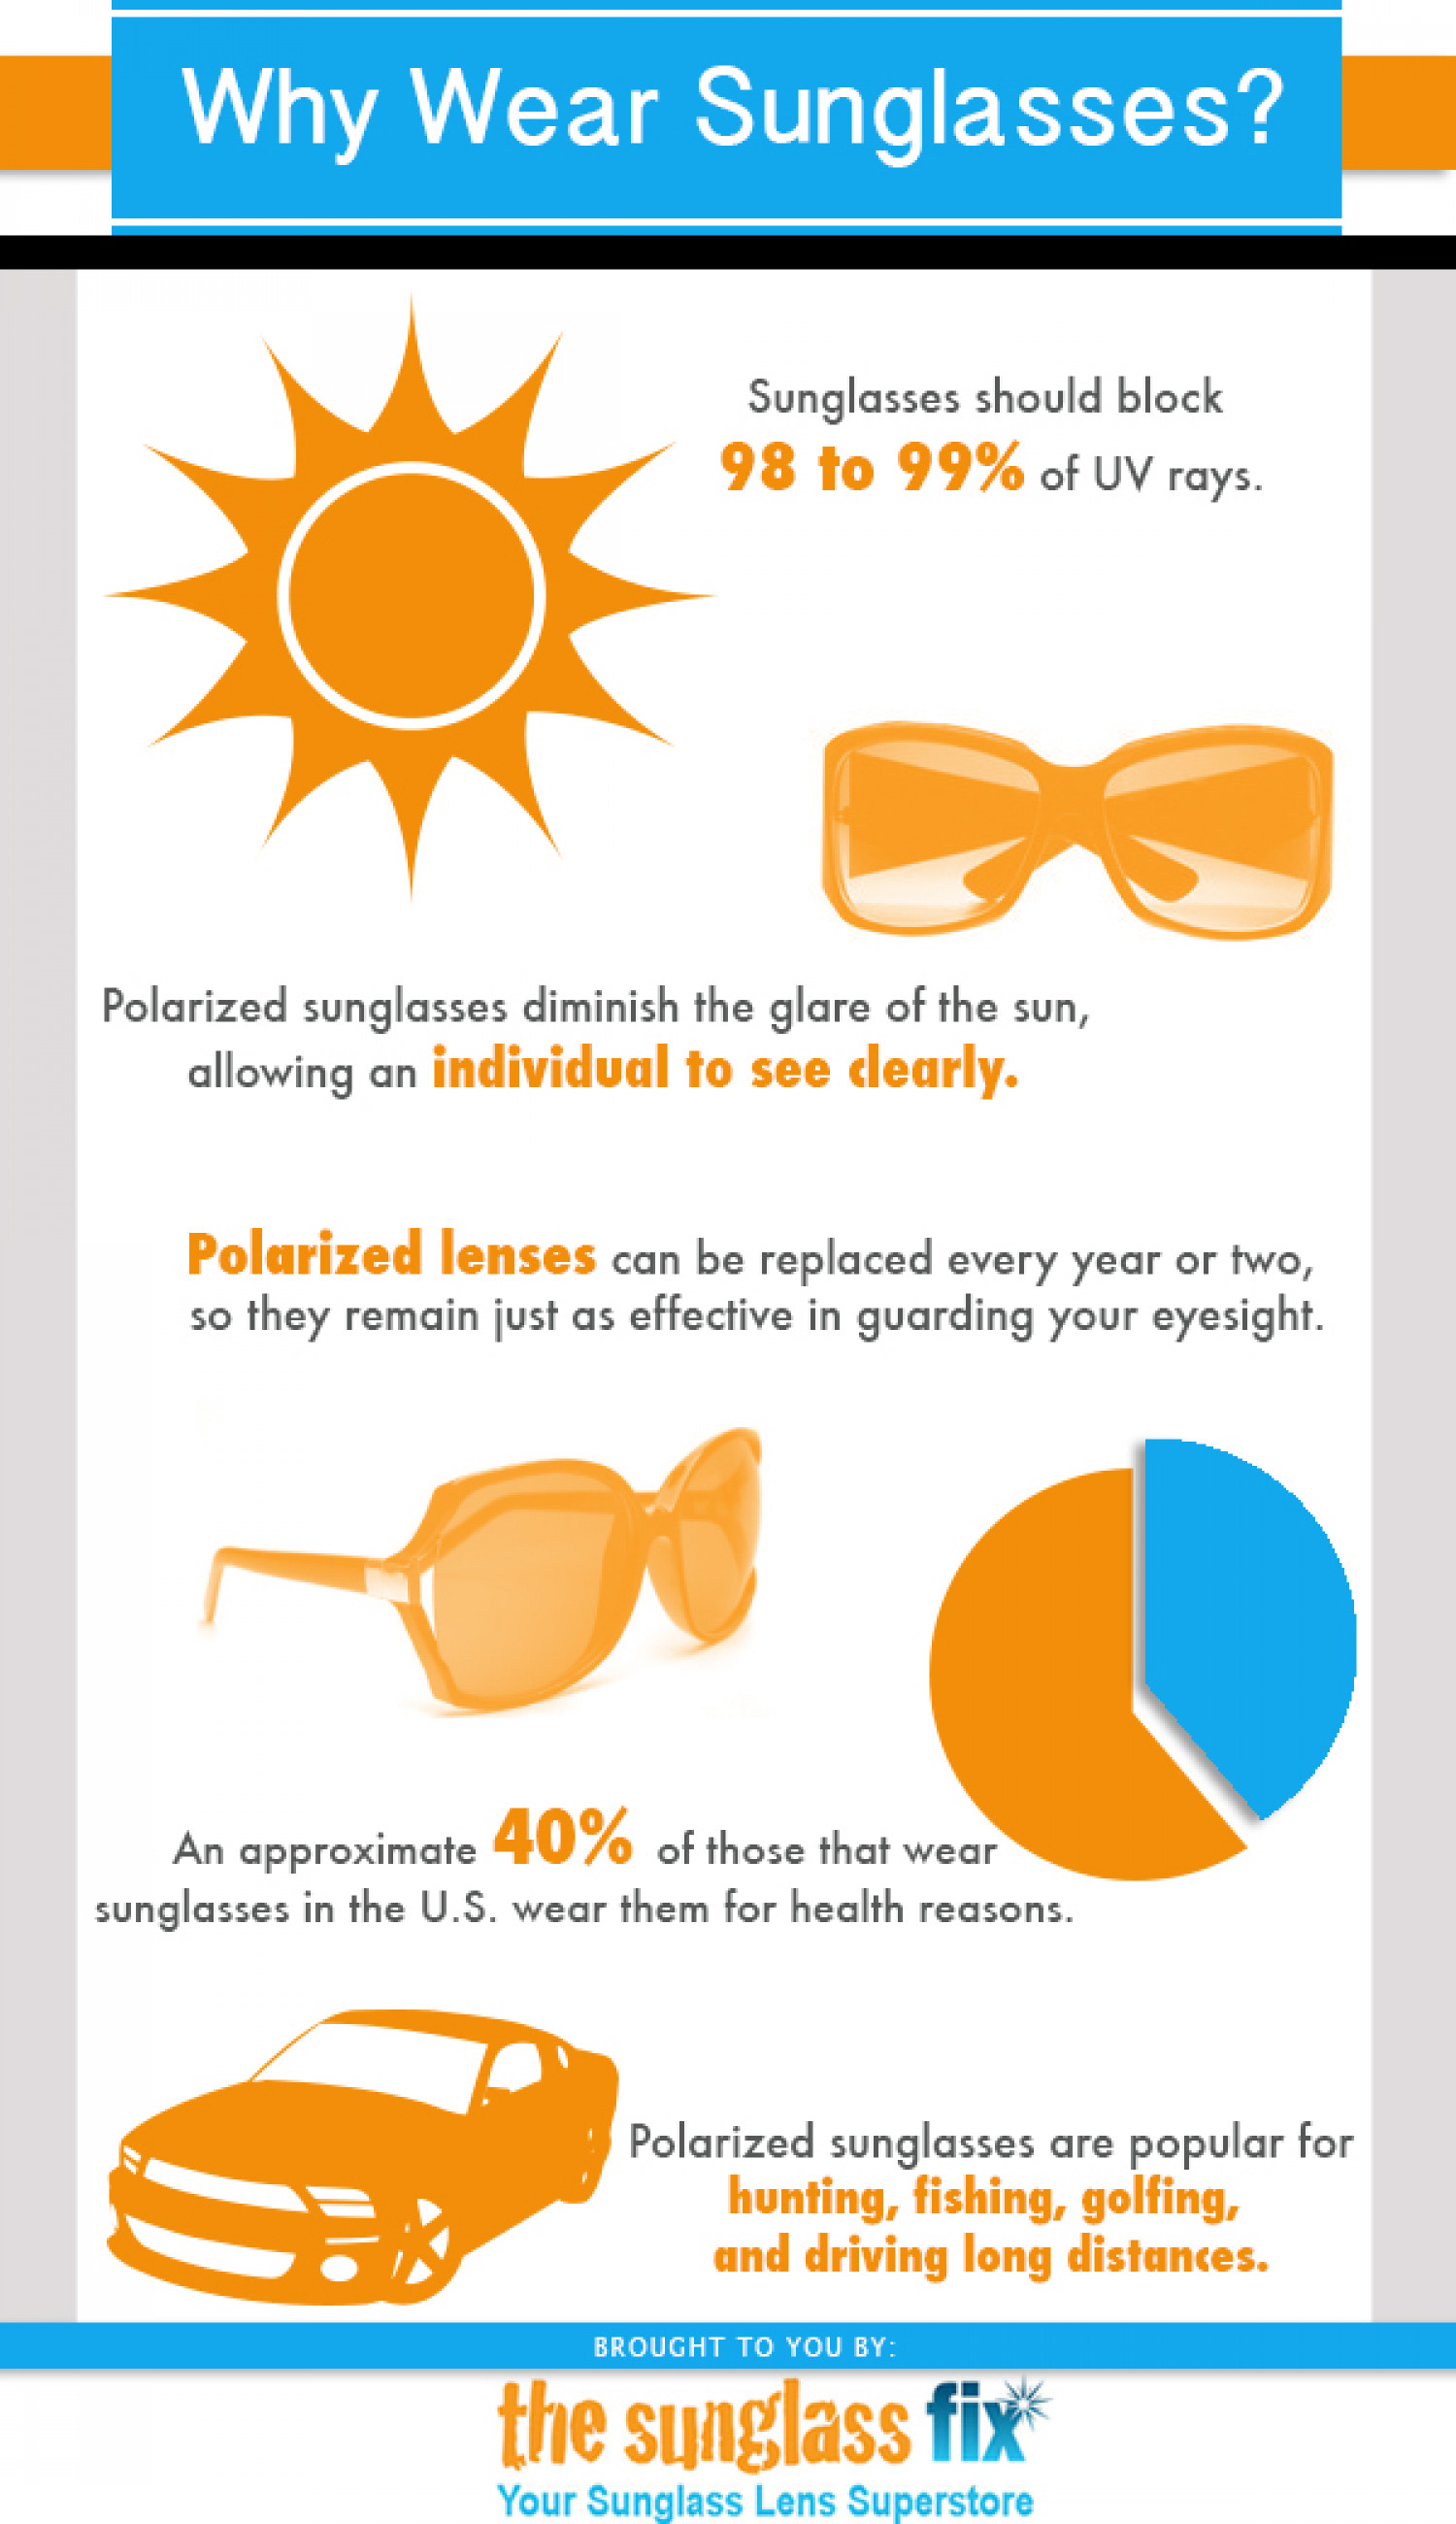 Why Wear Sunglasses? Infographic